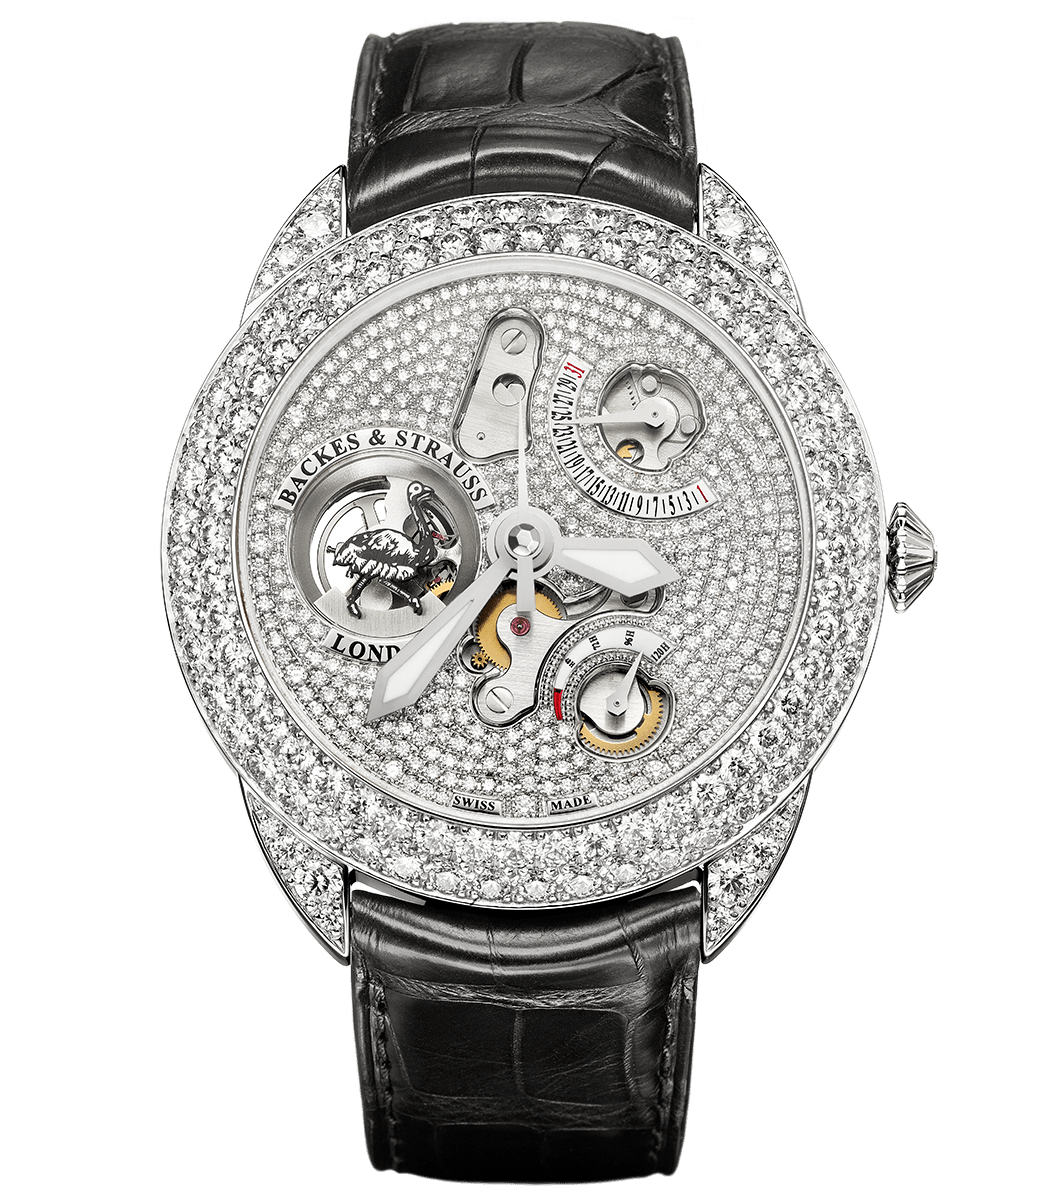 Earl of Strauss 45 limited edition watch with ideal-cut diamonds in case and dial